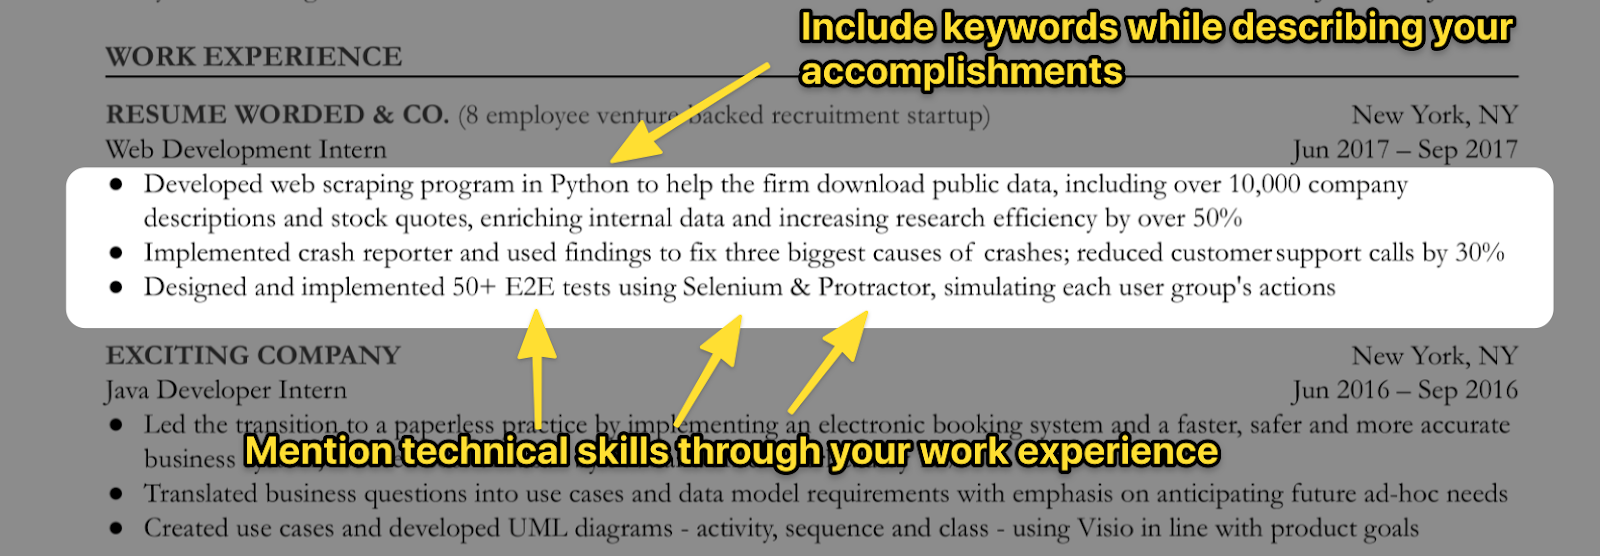 Use keywords in your work experience section to get past ATS